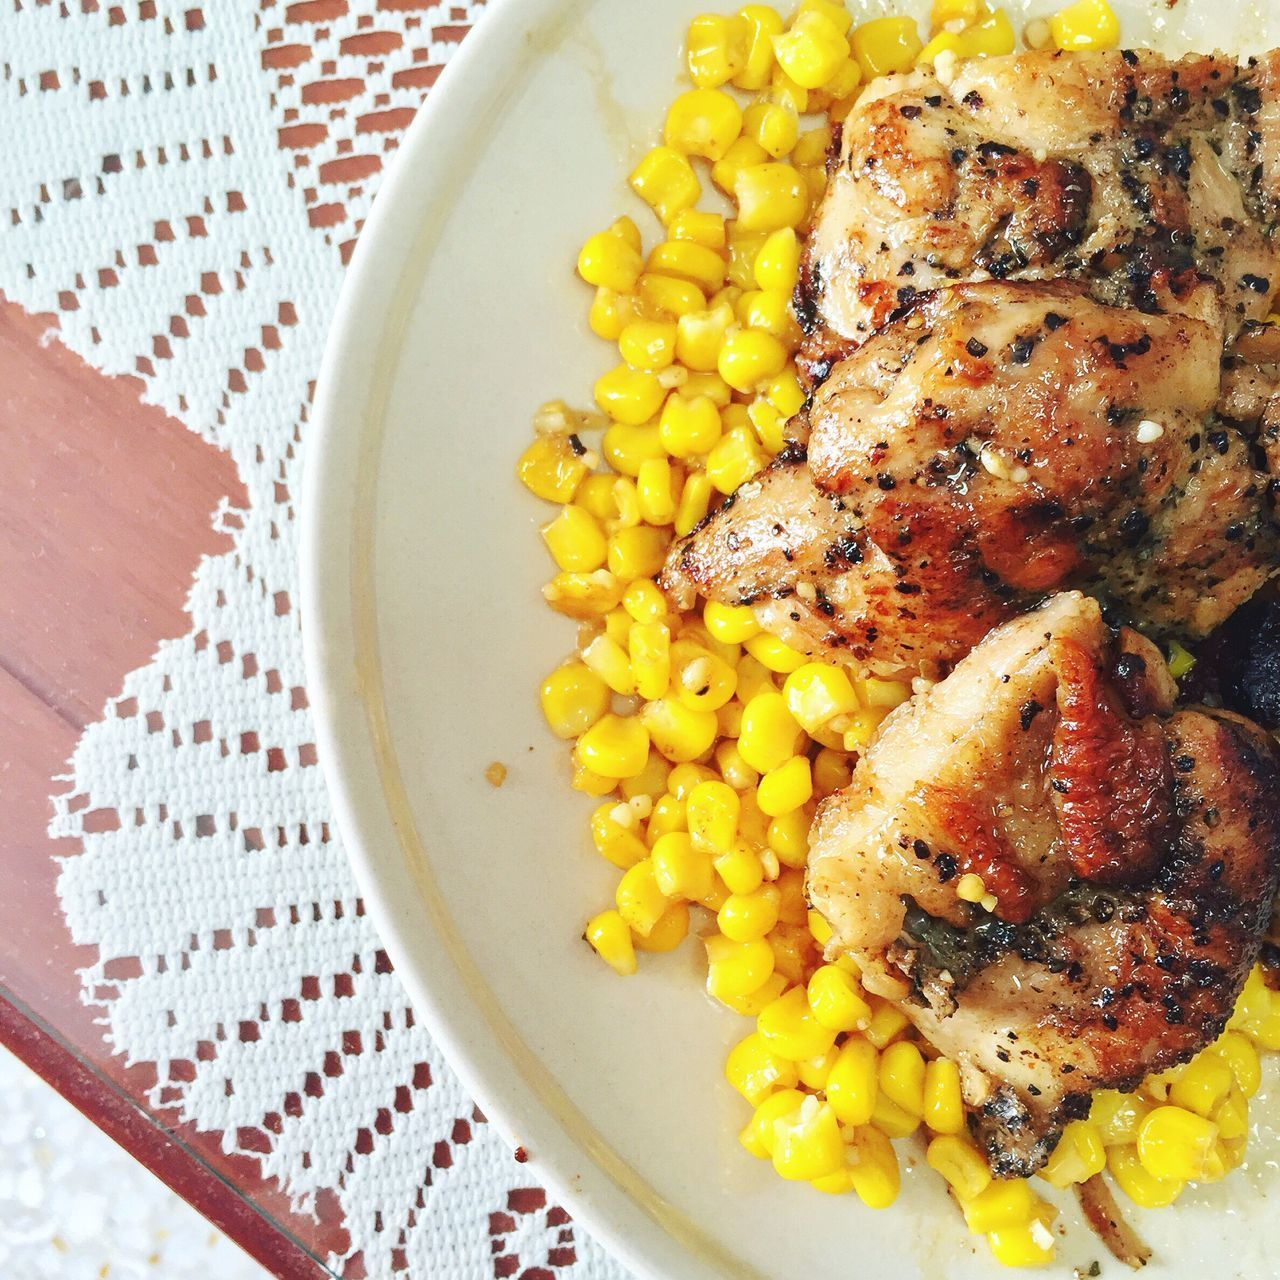 Foodphotography Chickenfillet Corn Homemade Homemade Food Lunch